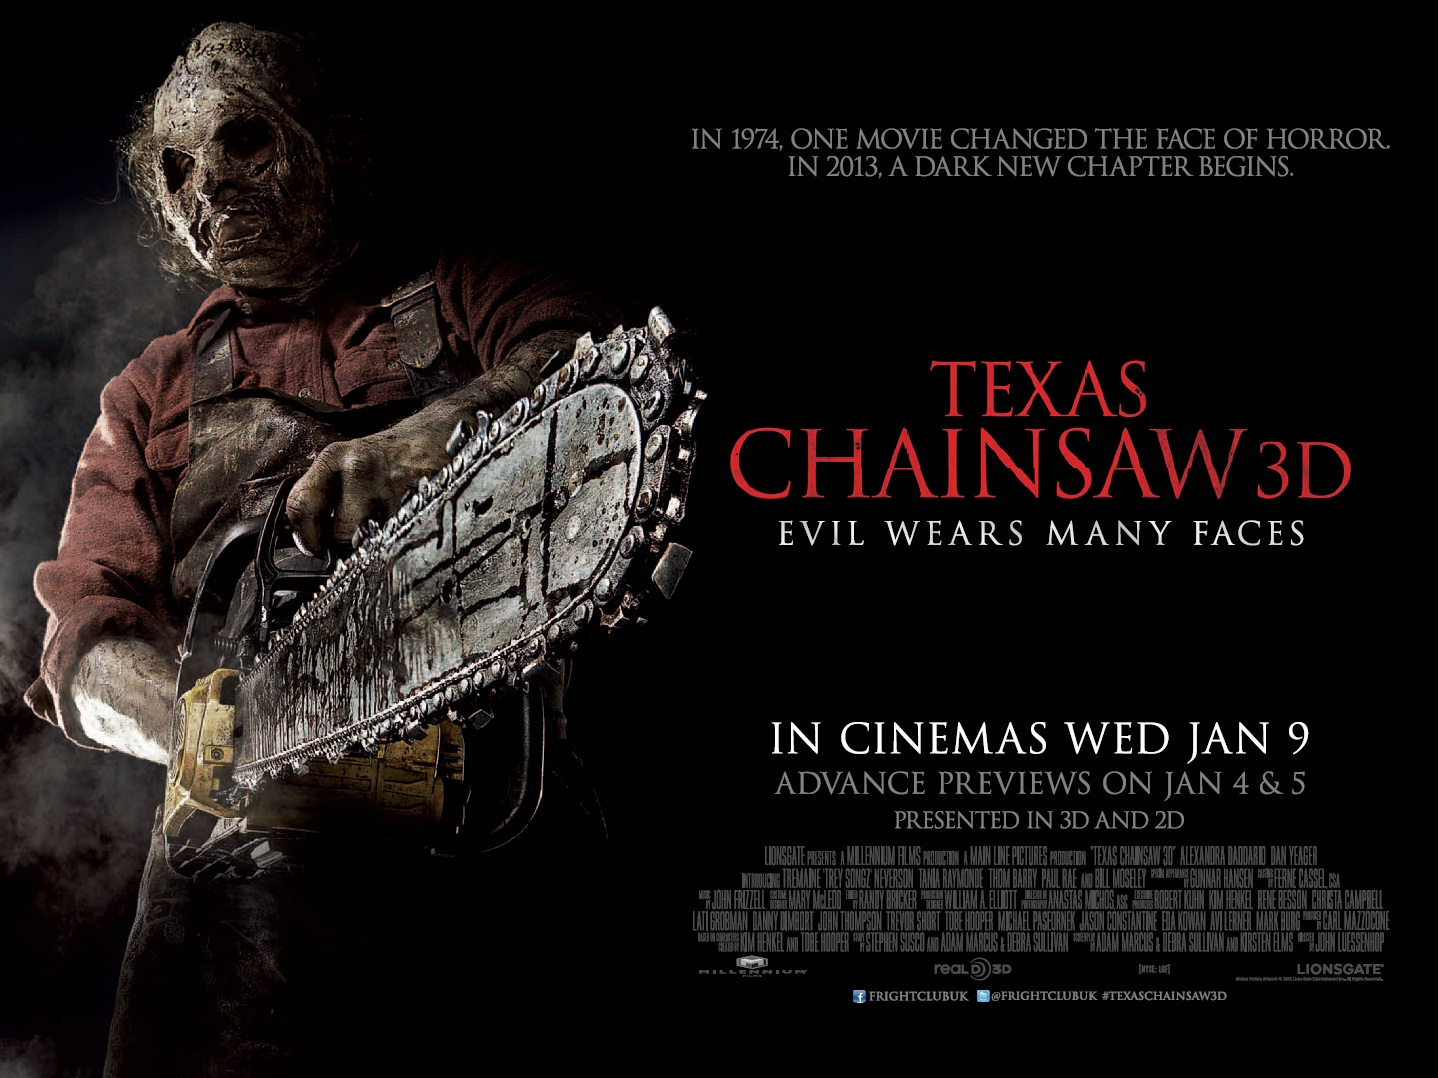 Texas-Chainsaw-3D-UK-Quad-Poster